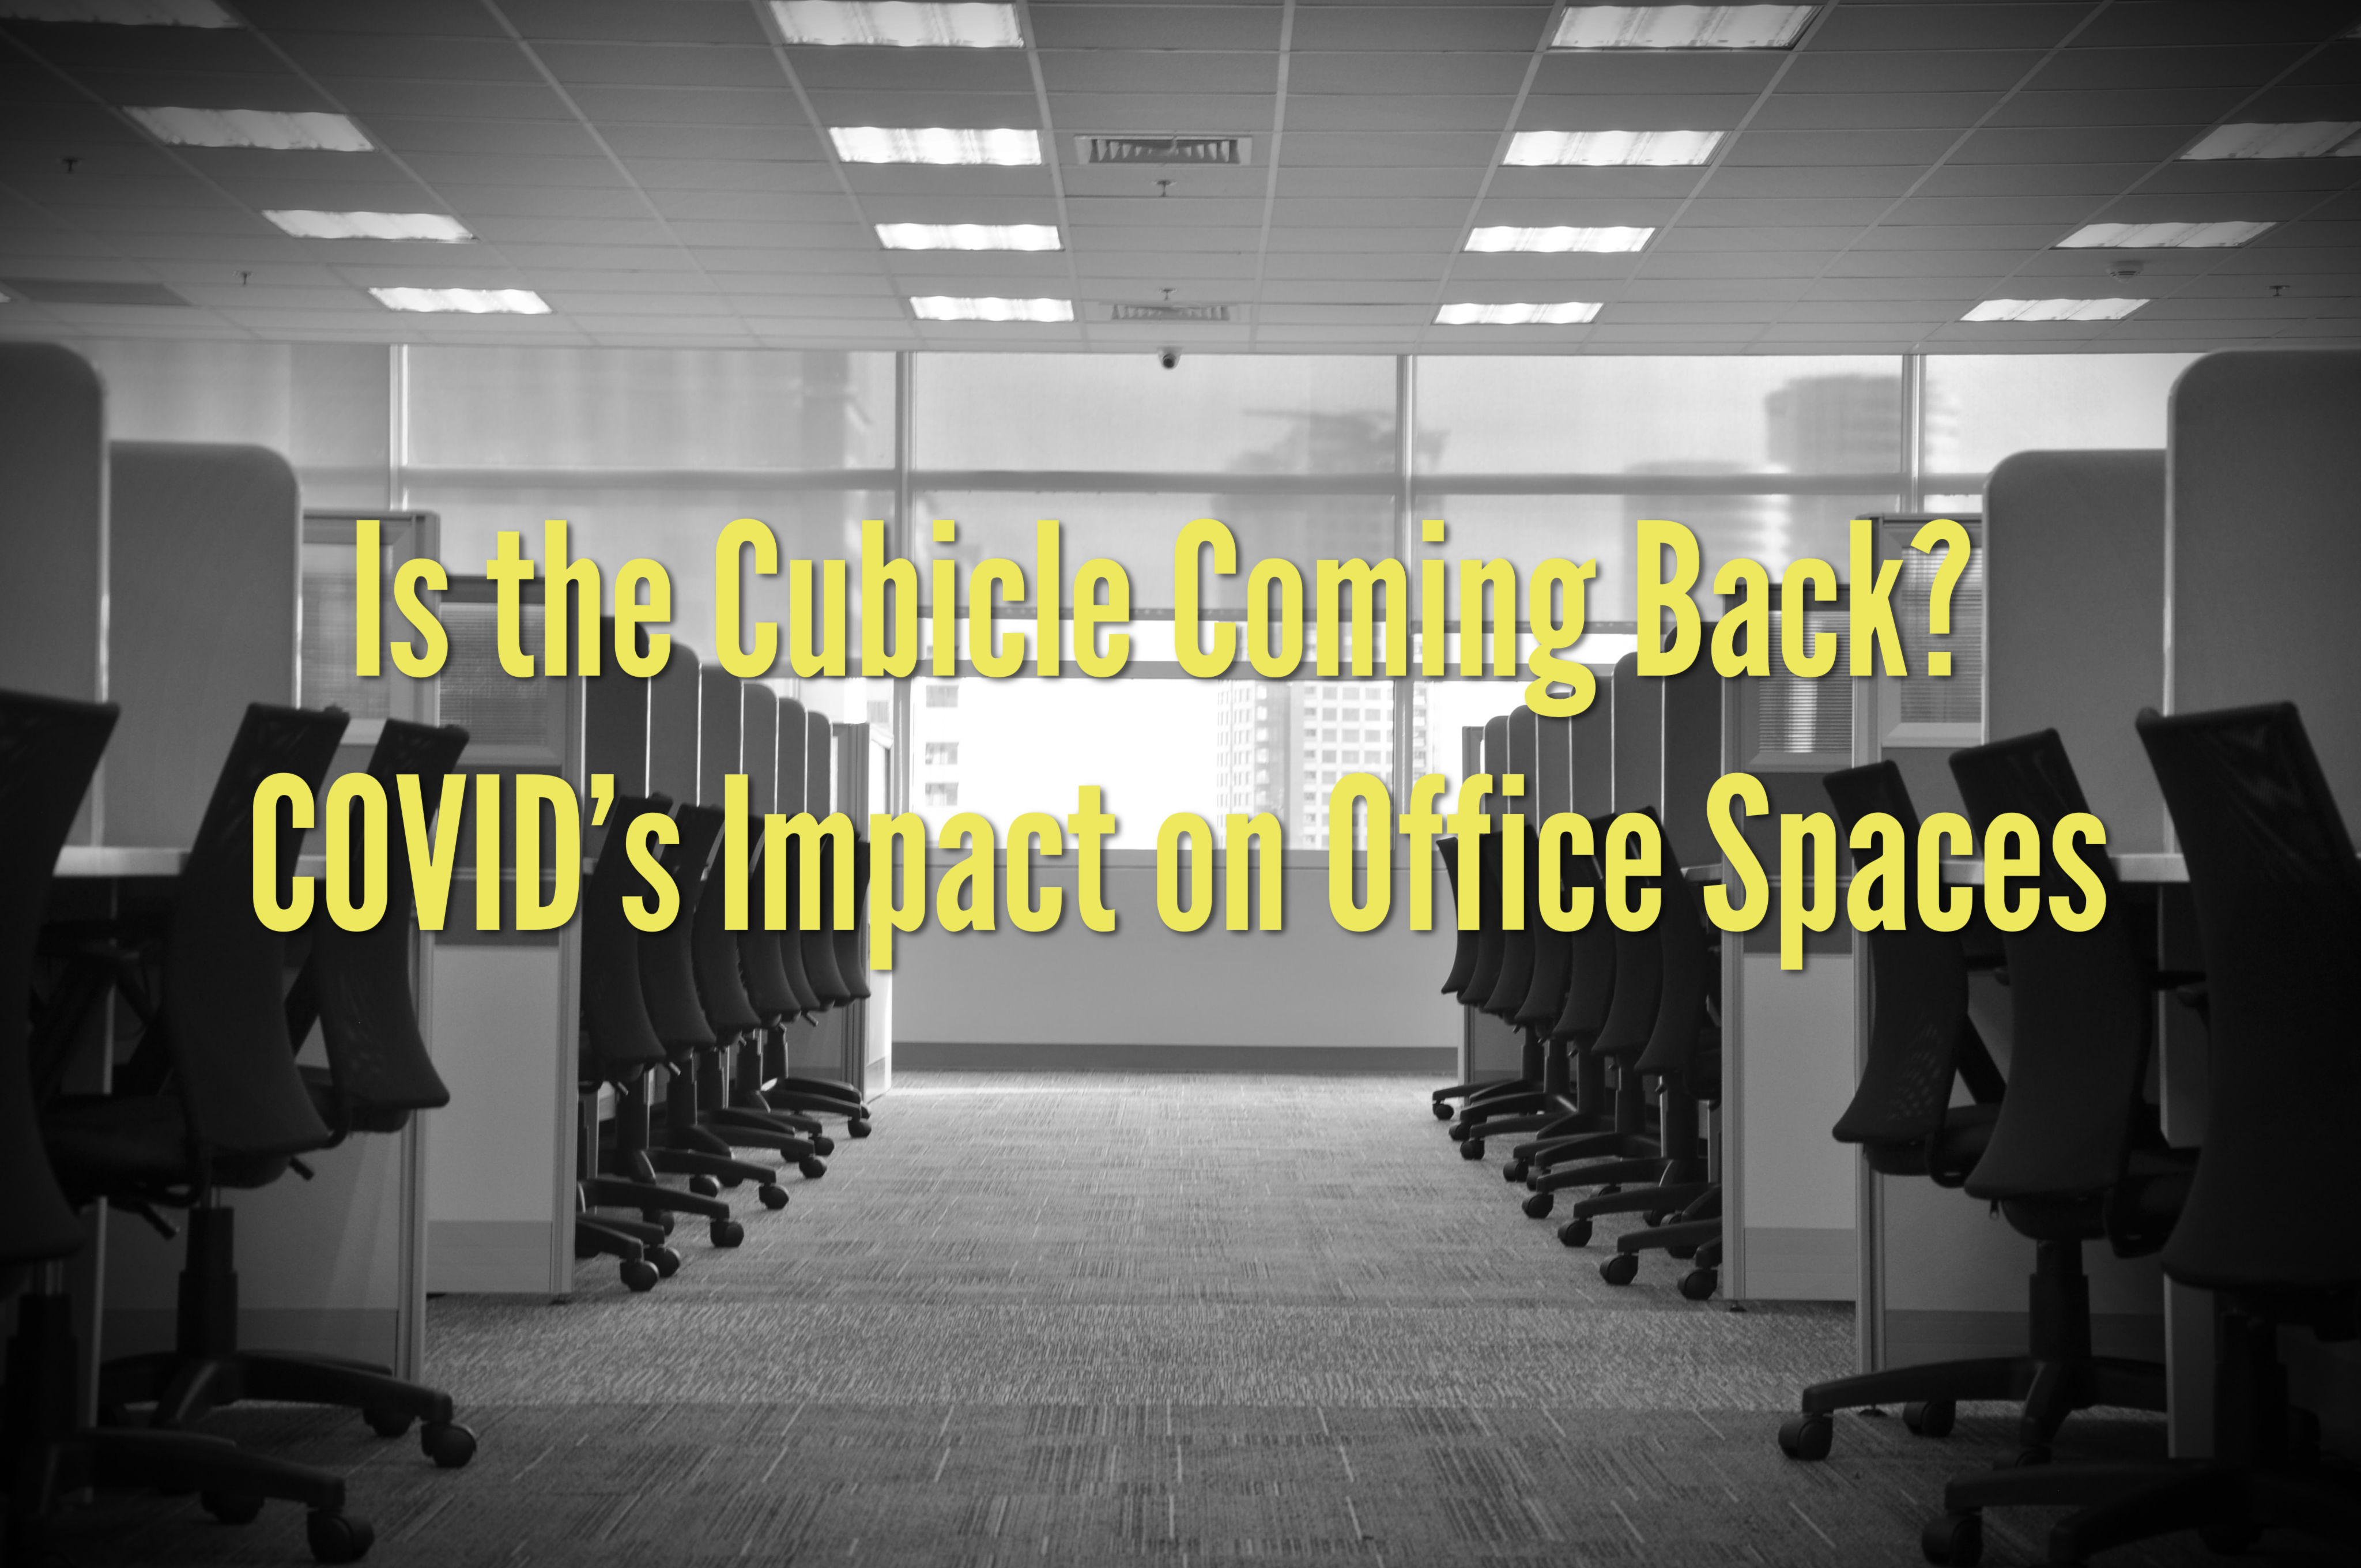 Is the Cubicle Coming Back? COVID's Impact on Office Spaces